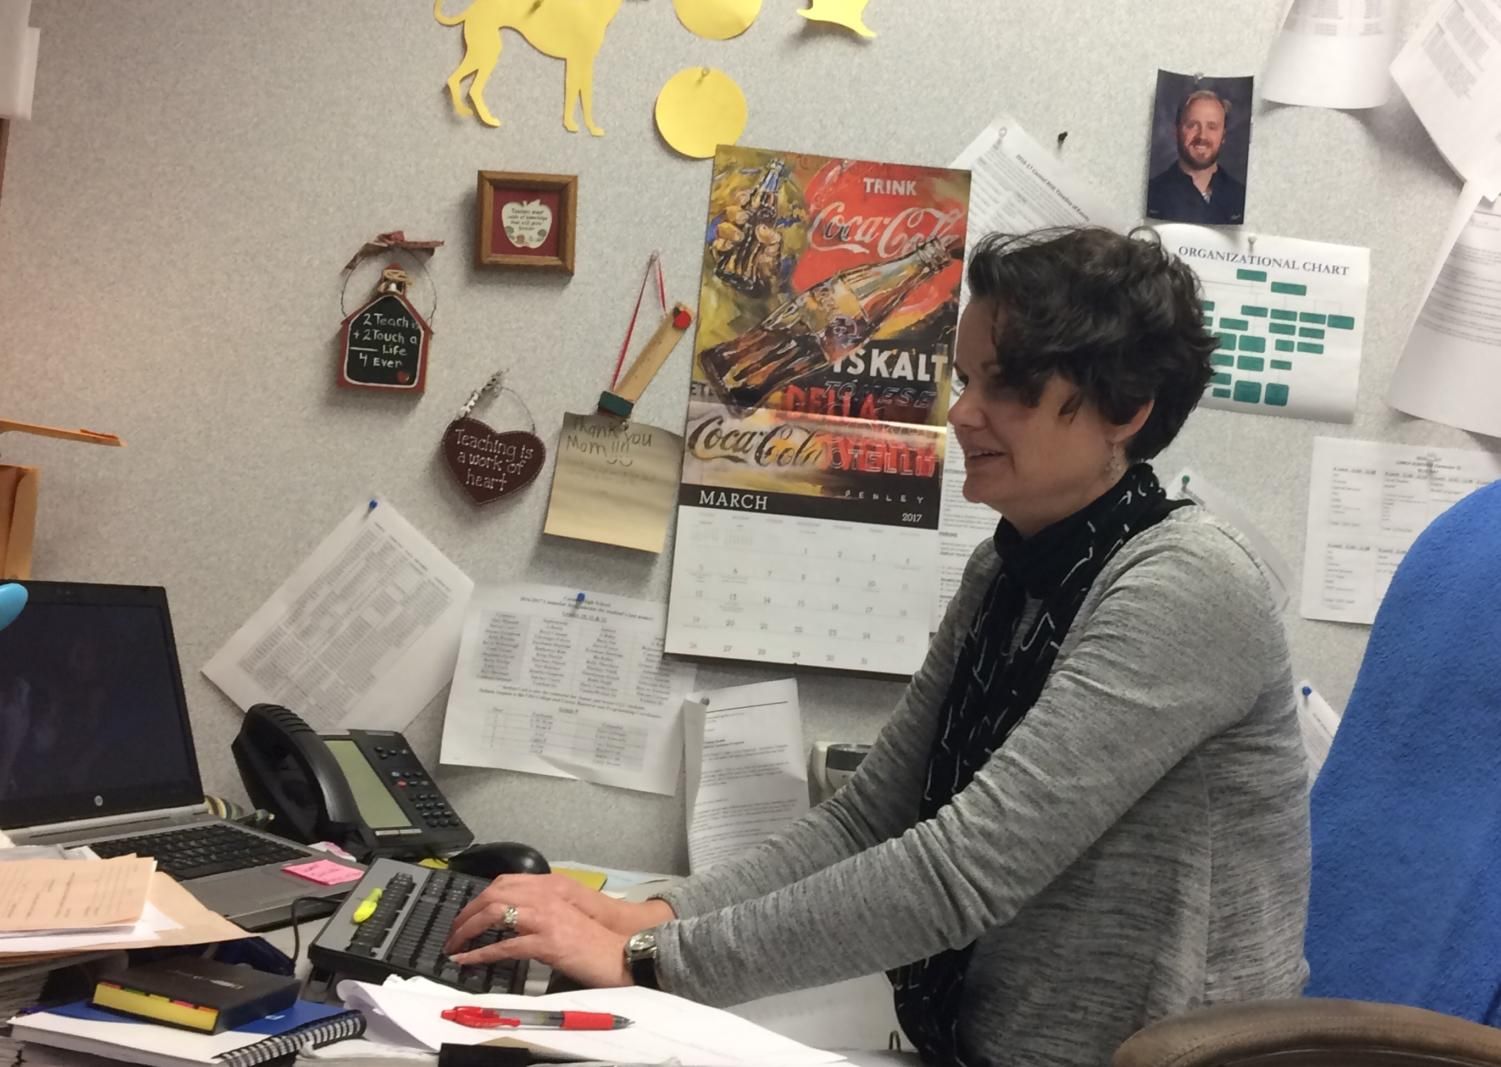 Math department chair Jacinda Sohalski quietly works at her desk. In the following week, she will be working to administer ISTEP exams.